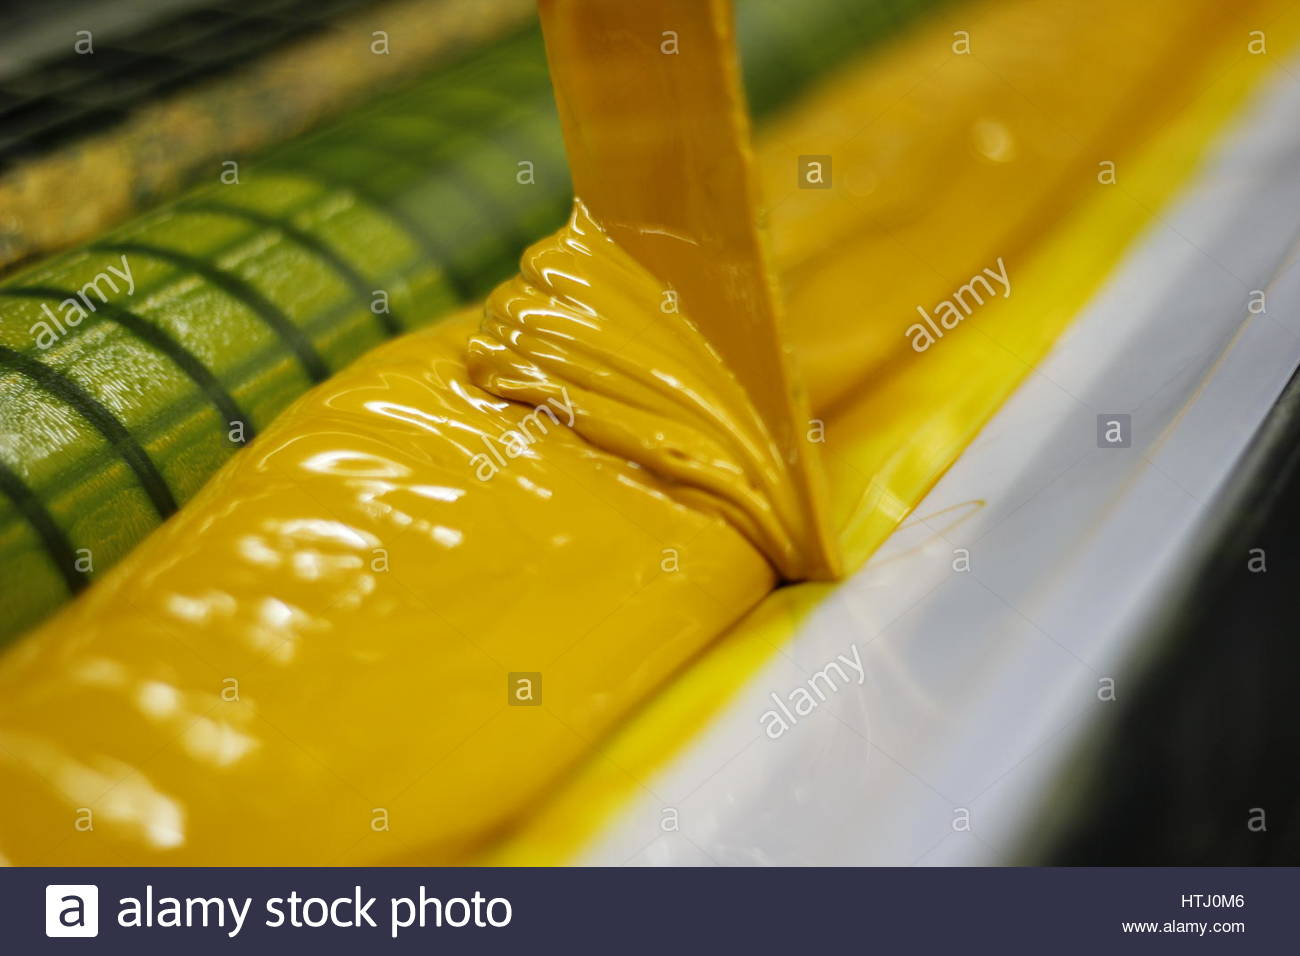 Offset printing color YELLOW - Stock Image